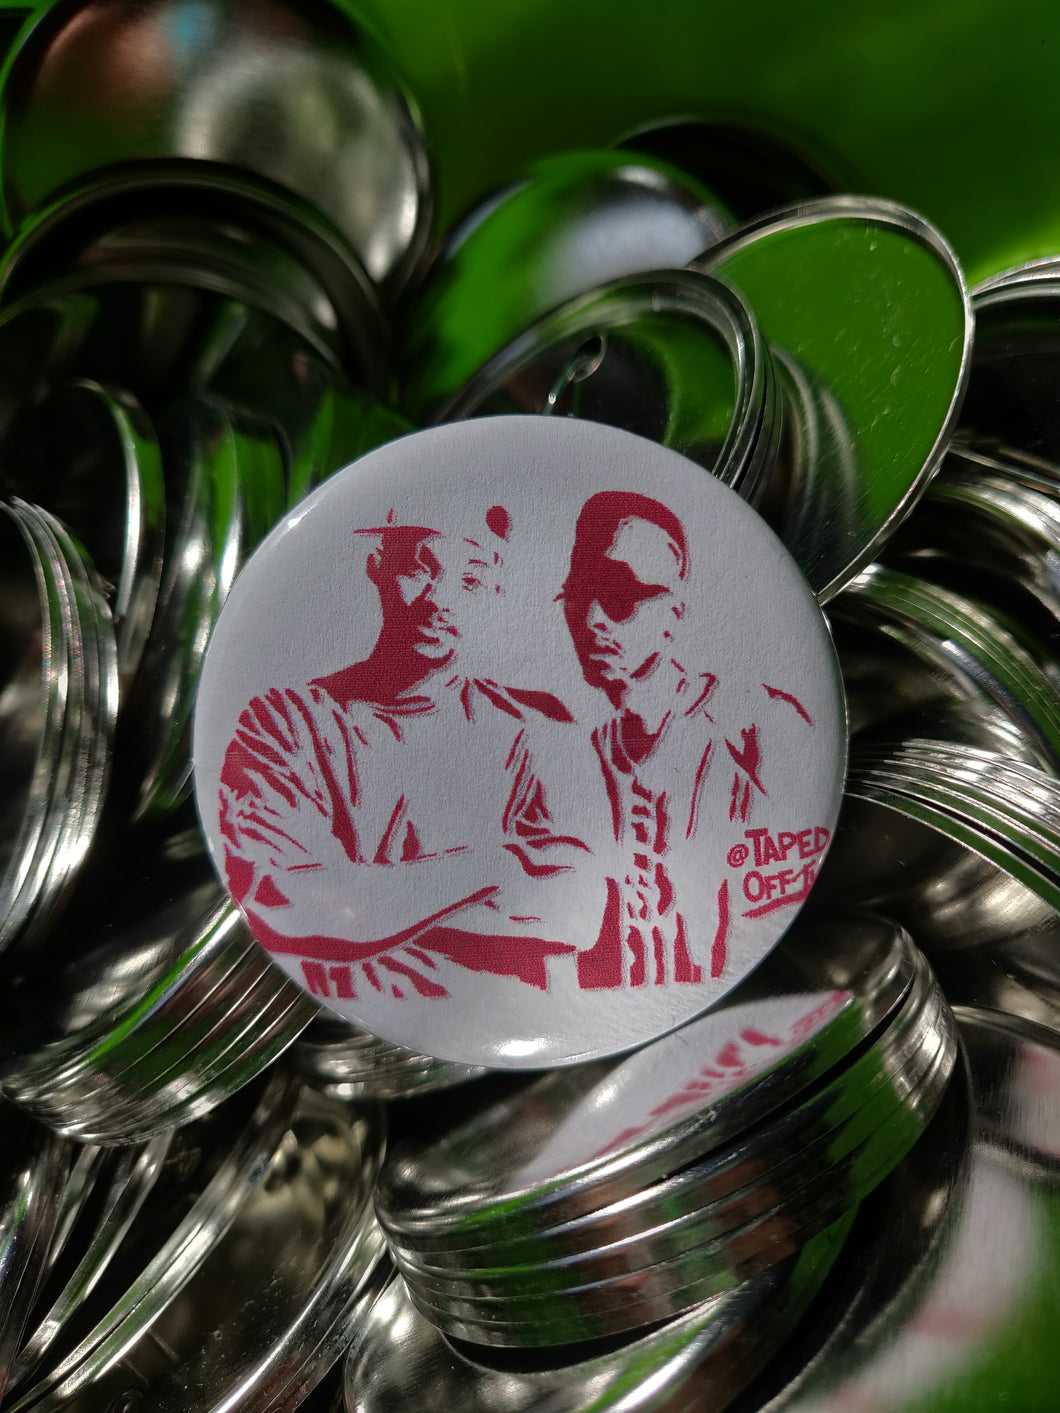 DJ Jazzy Jeff & the Fresh Prince pin